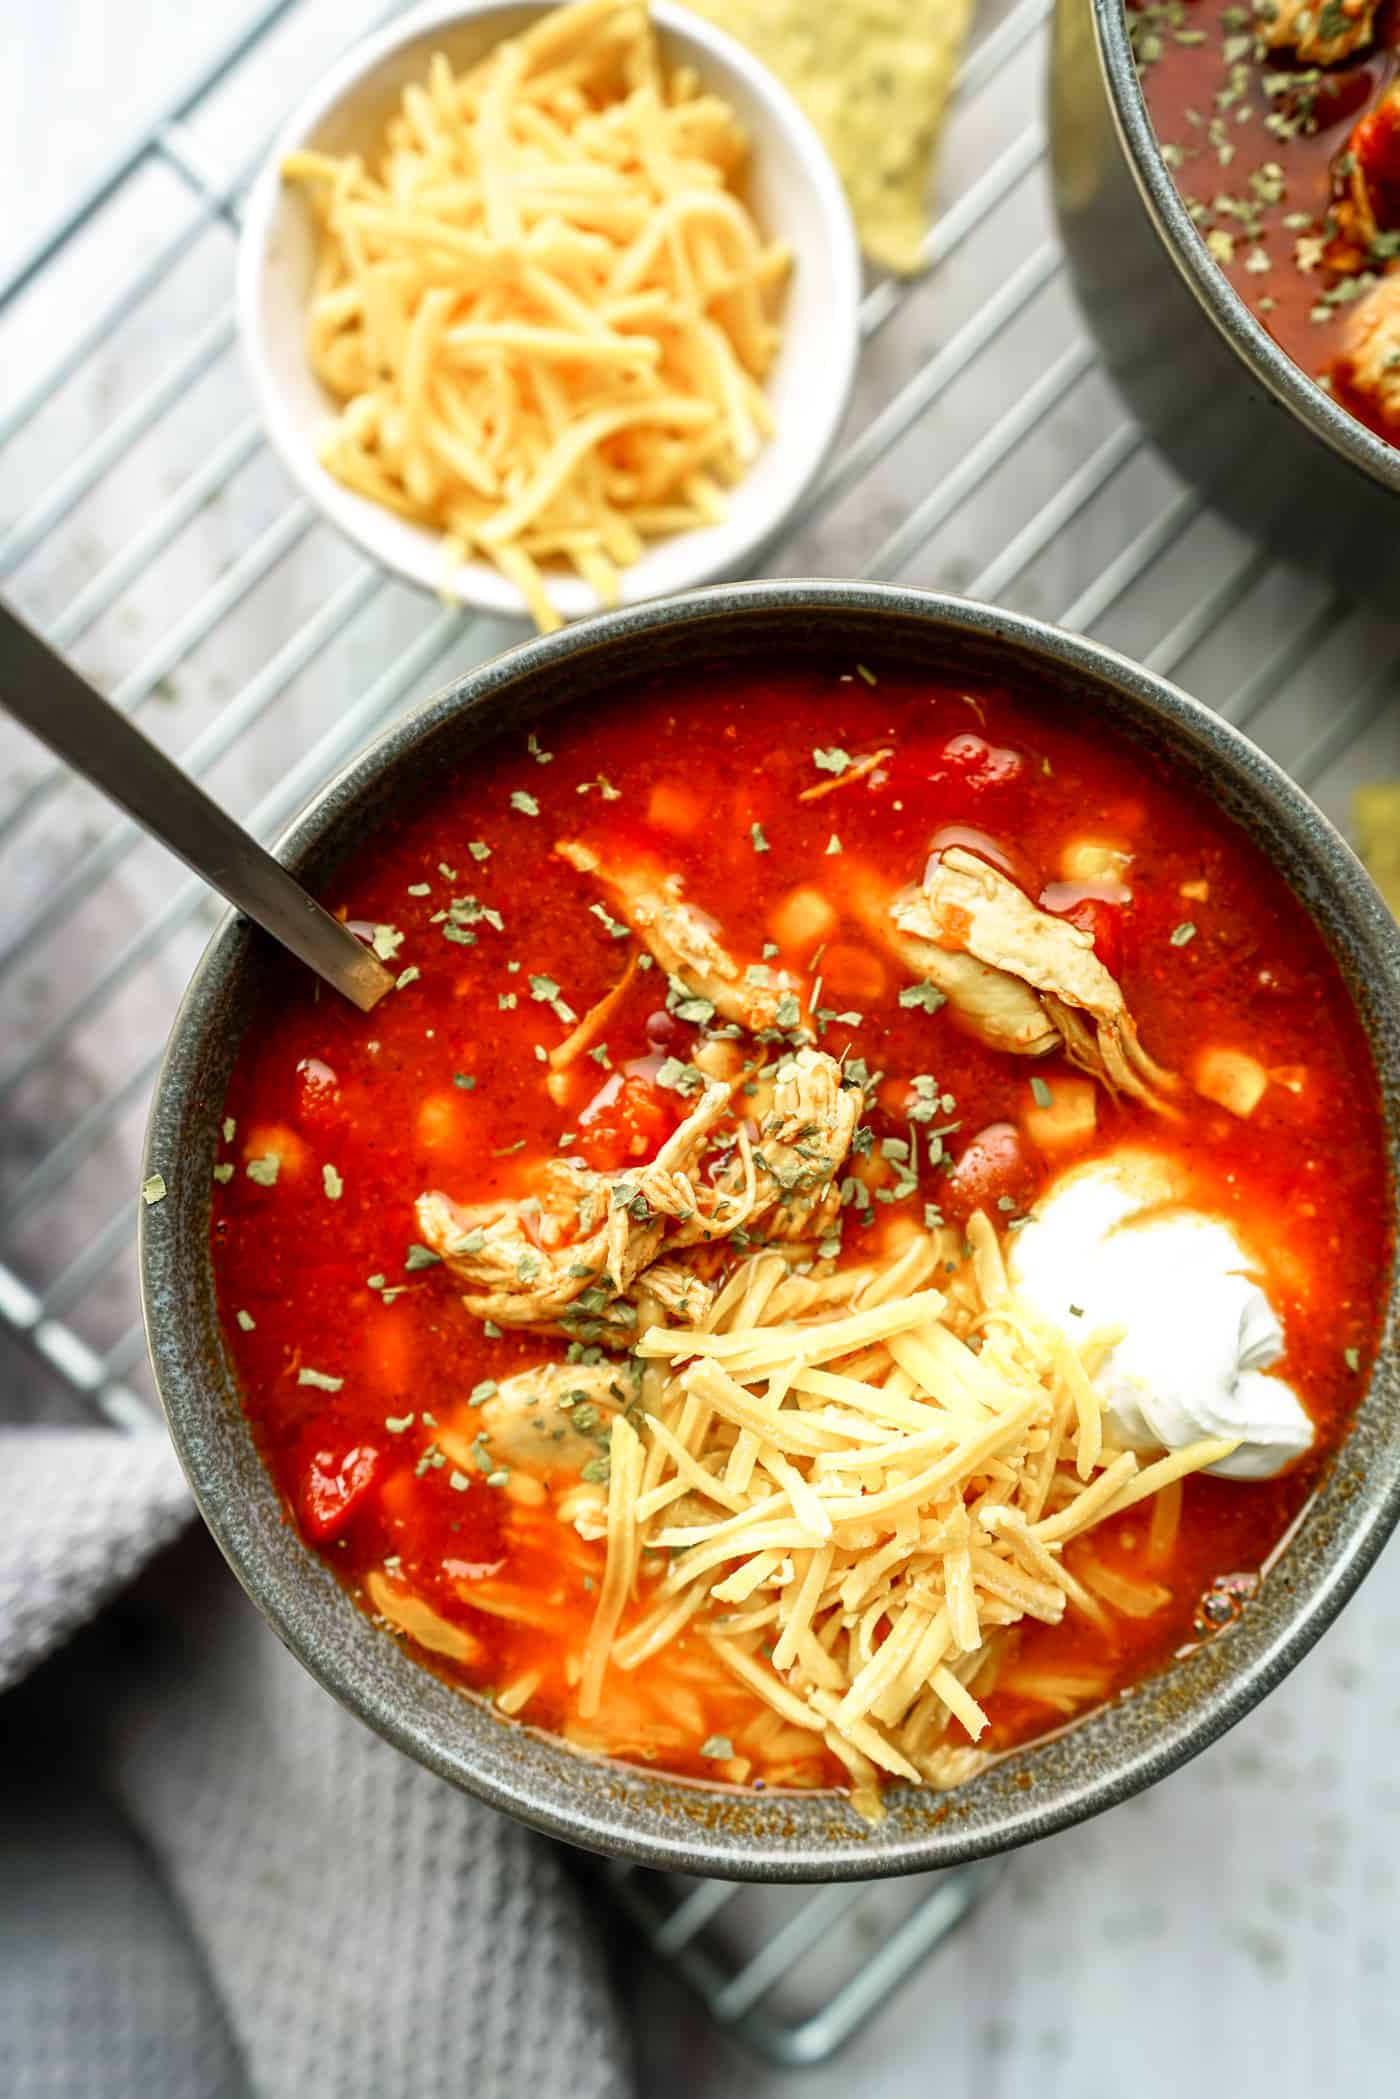 A Lily Love Affair shares Instant Pot Chicken Enchilada soup recipe with cheese and tortilla chips